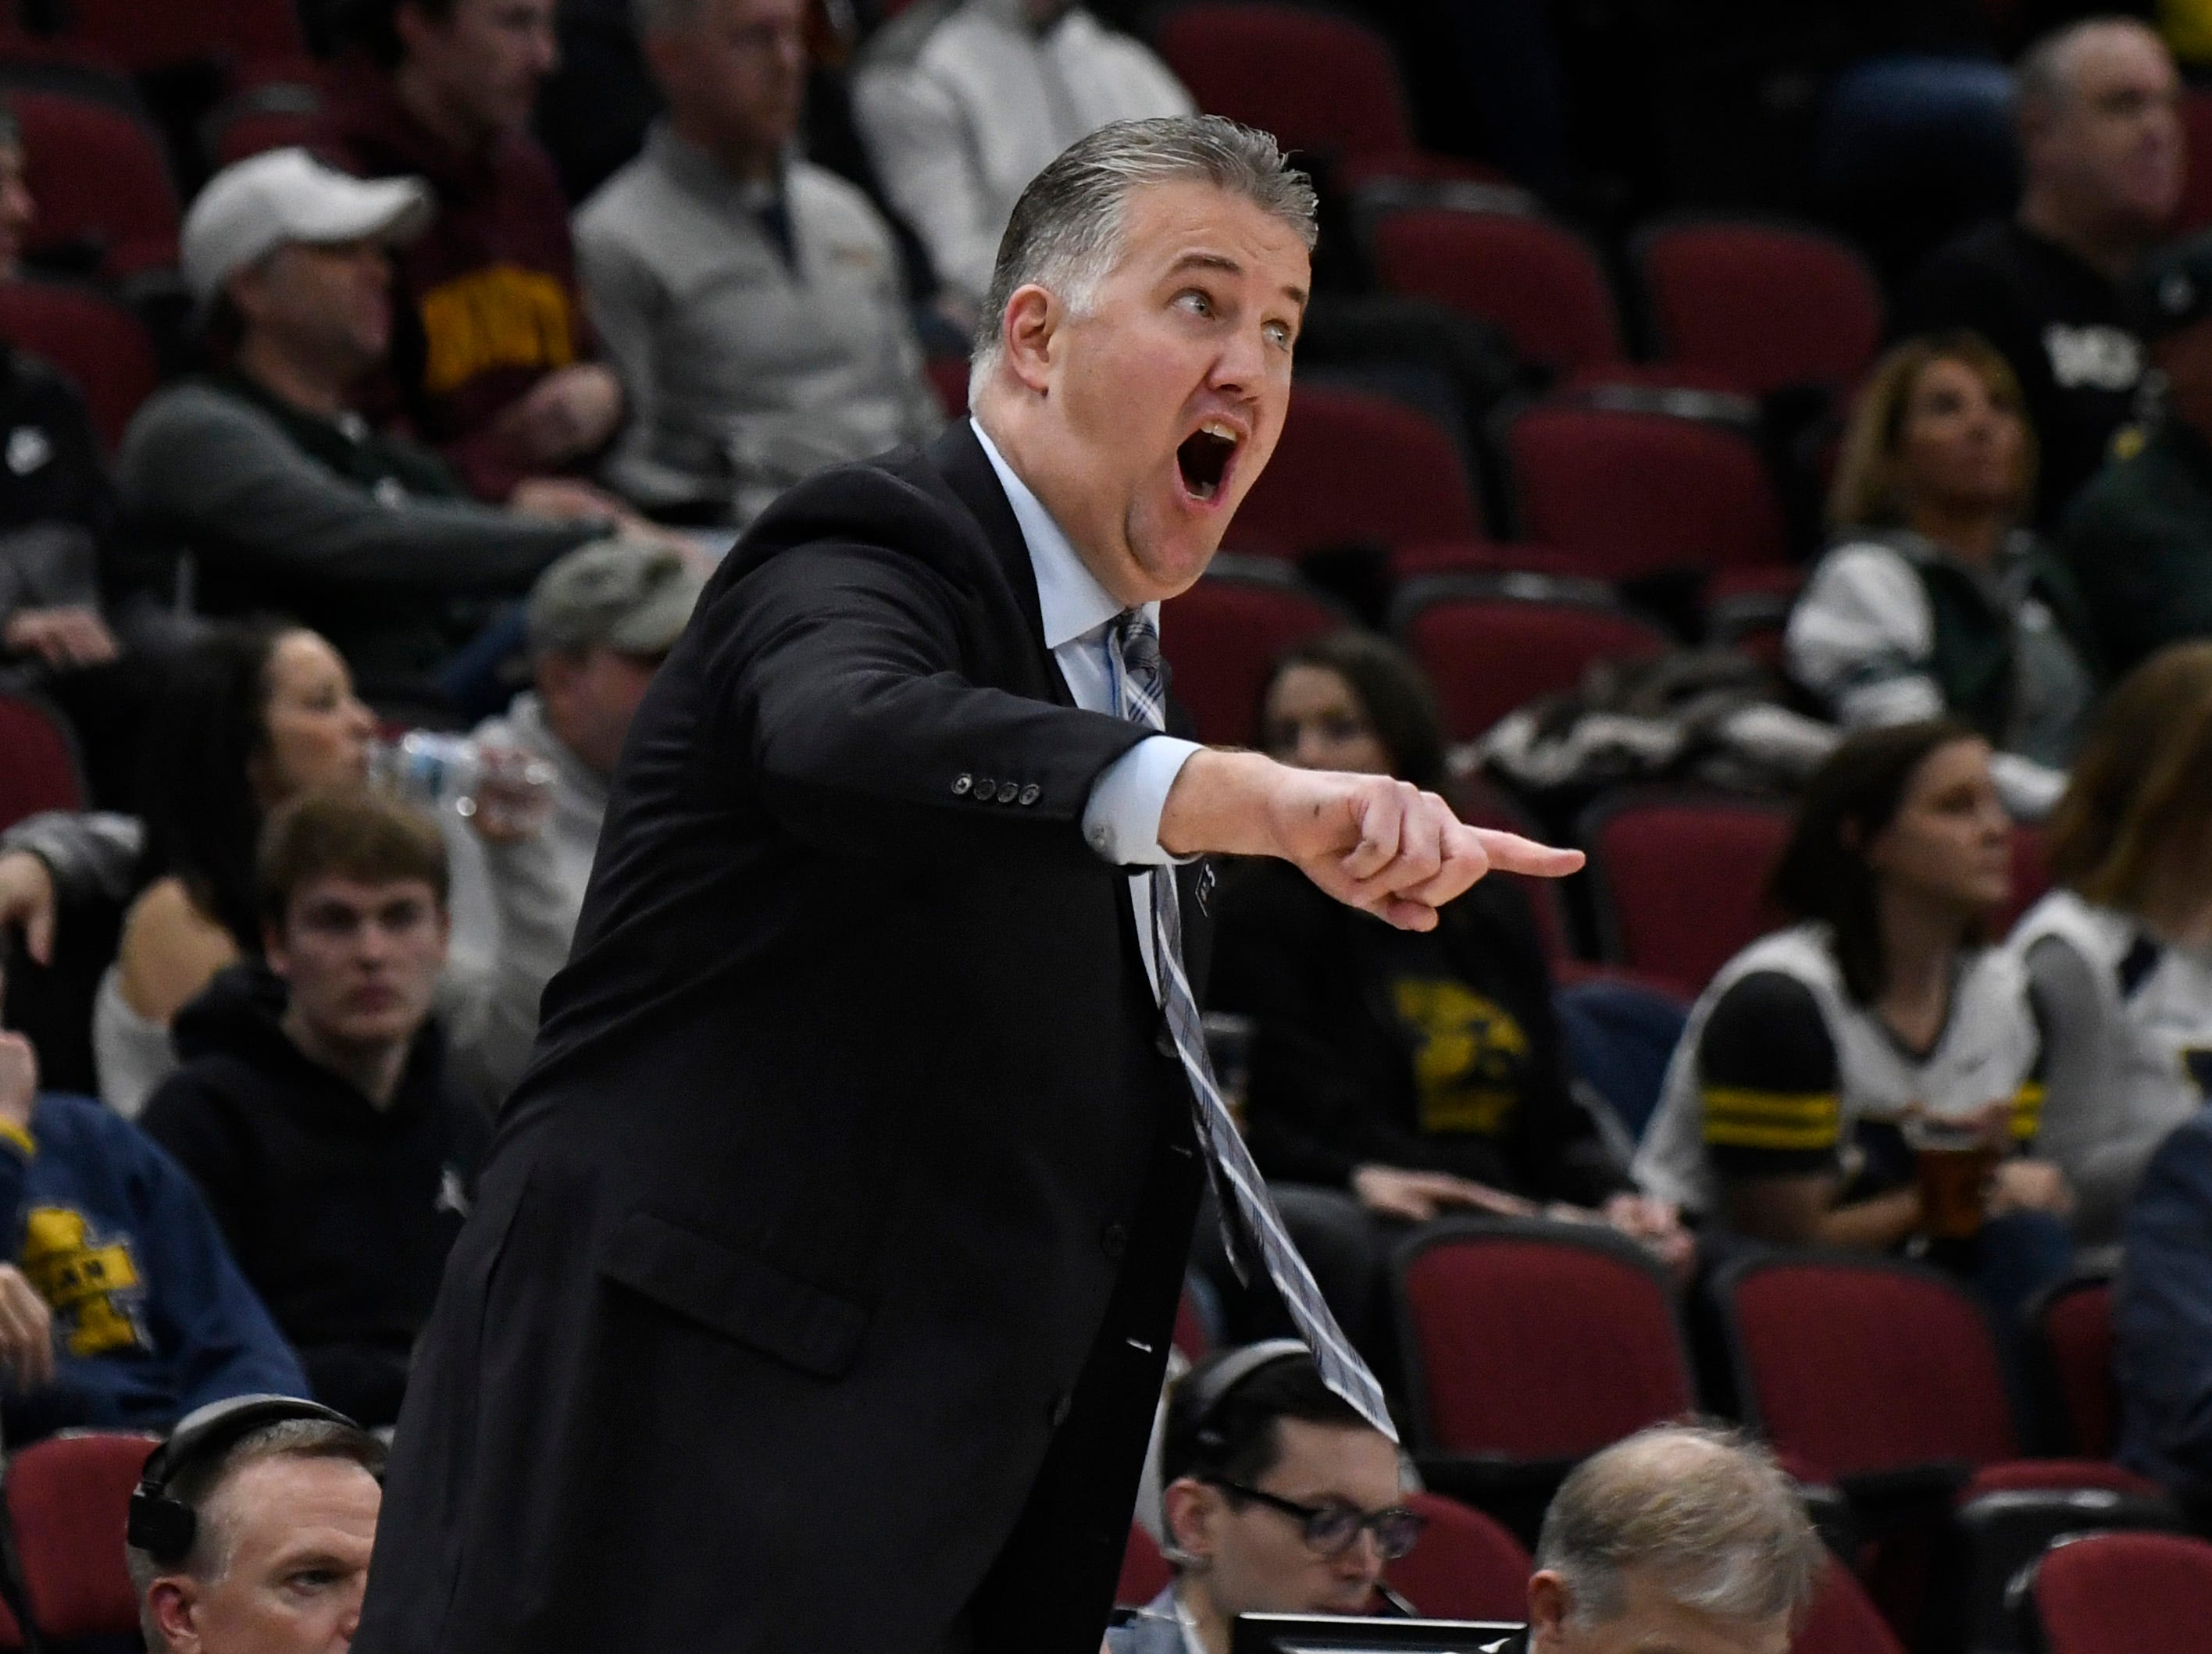 Mar 15, 2019; Chicago, IL, USA; Purdue Boilermakers head coach Matt Painter reacts during the first half in the Big Ten conference tournament at United Center. Mandatory Credit: David Banks-USA TODAY Sports